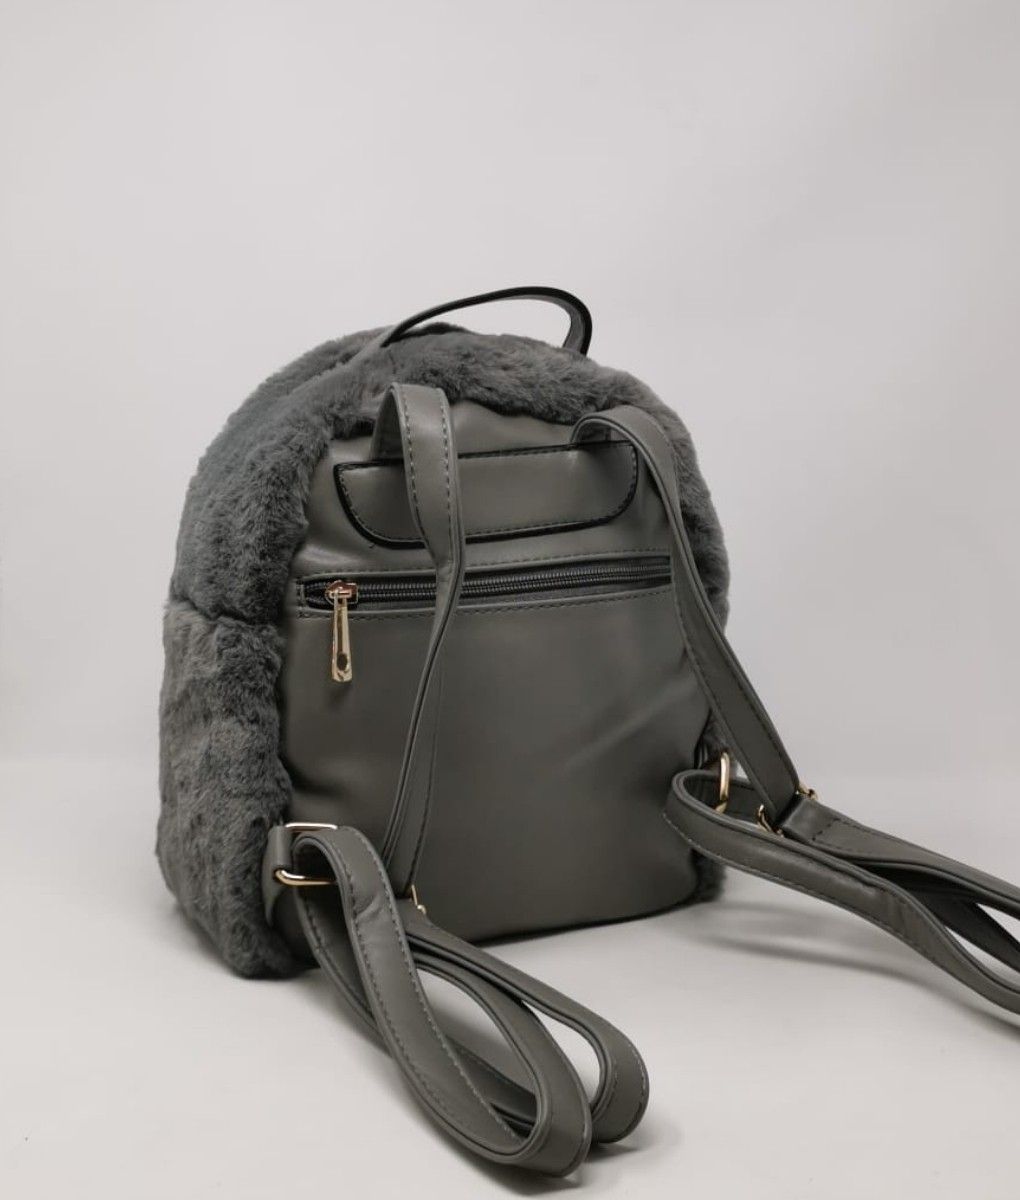 BACKPACK GRY - GRAY